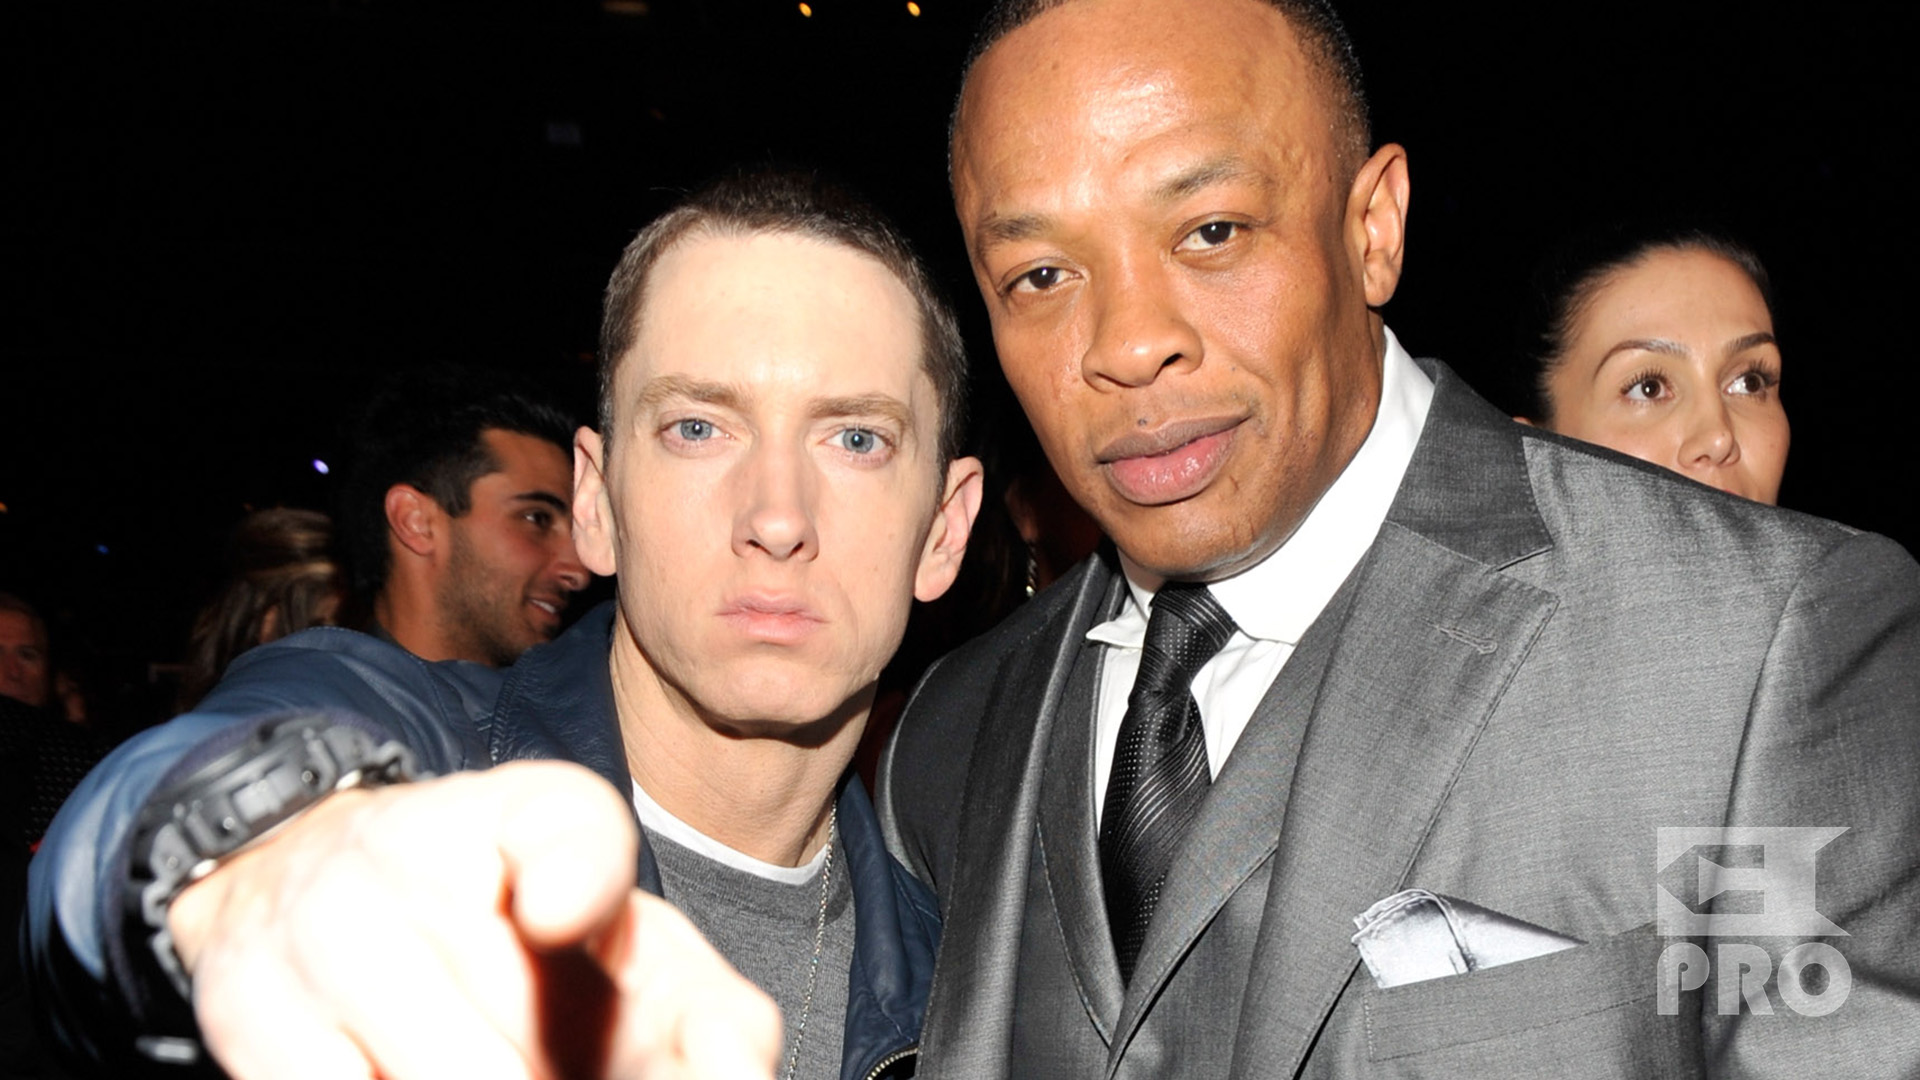 Eminem Dr. Dre The 53rd Annual GRAMMY Awards held at Staples Center on February 13, 2011 in Los Angeles, California.